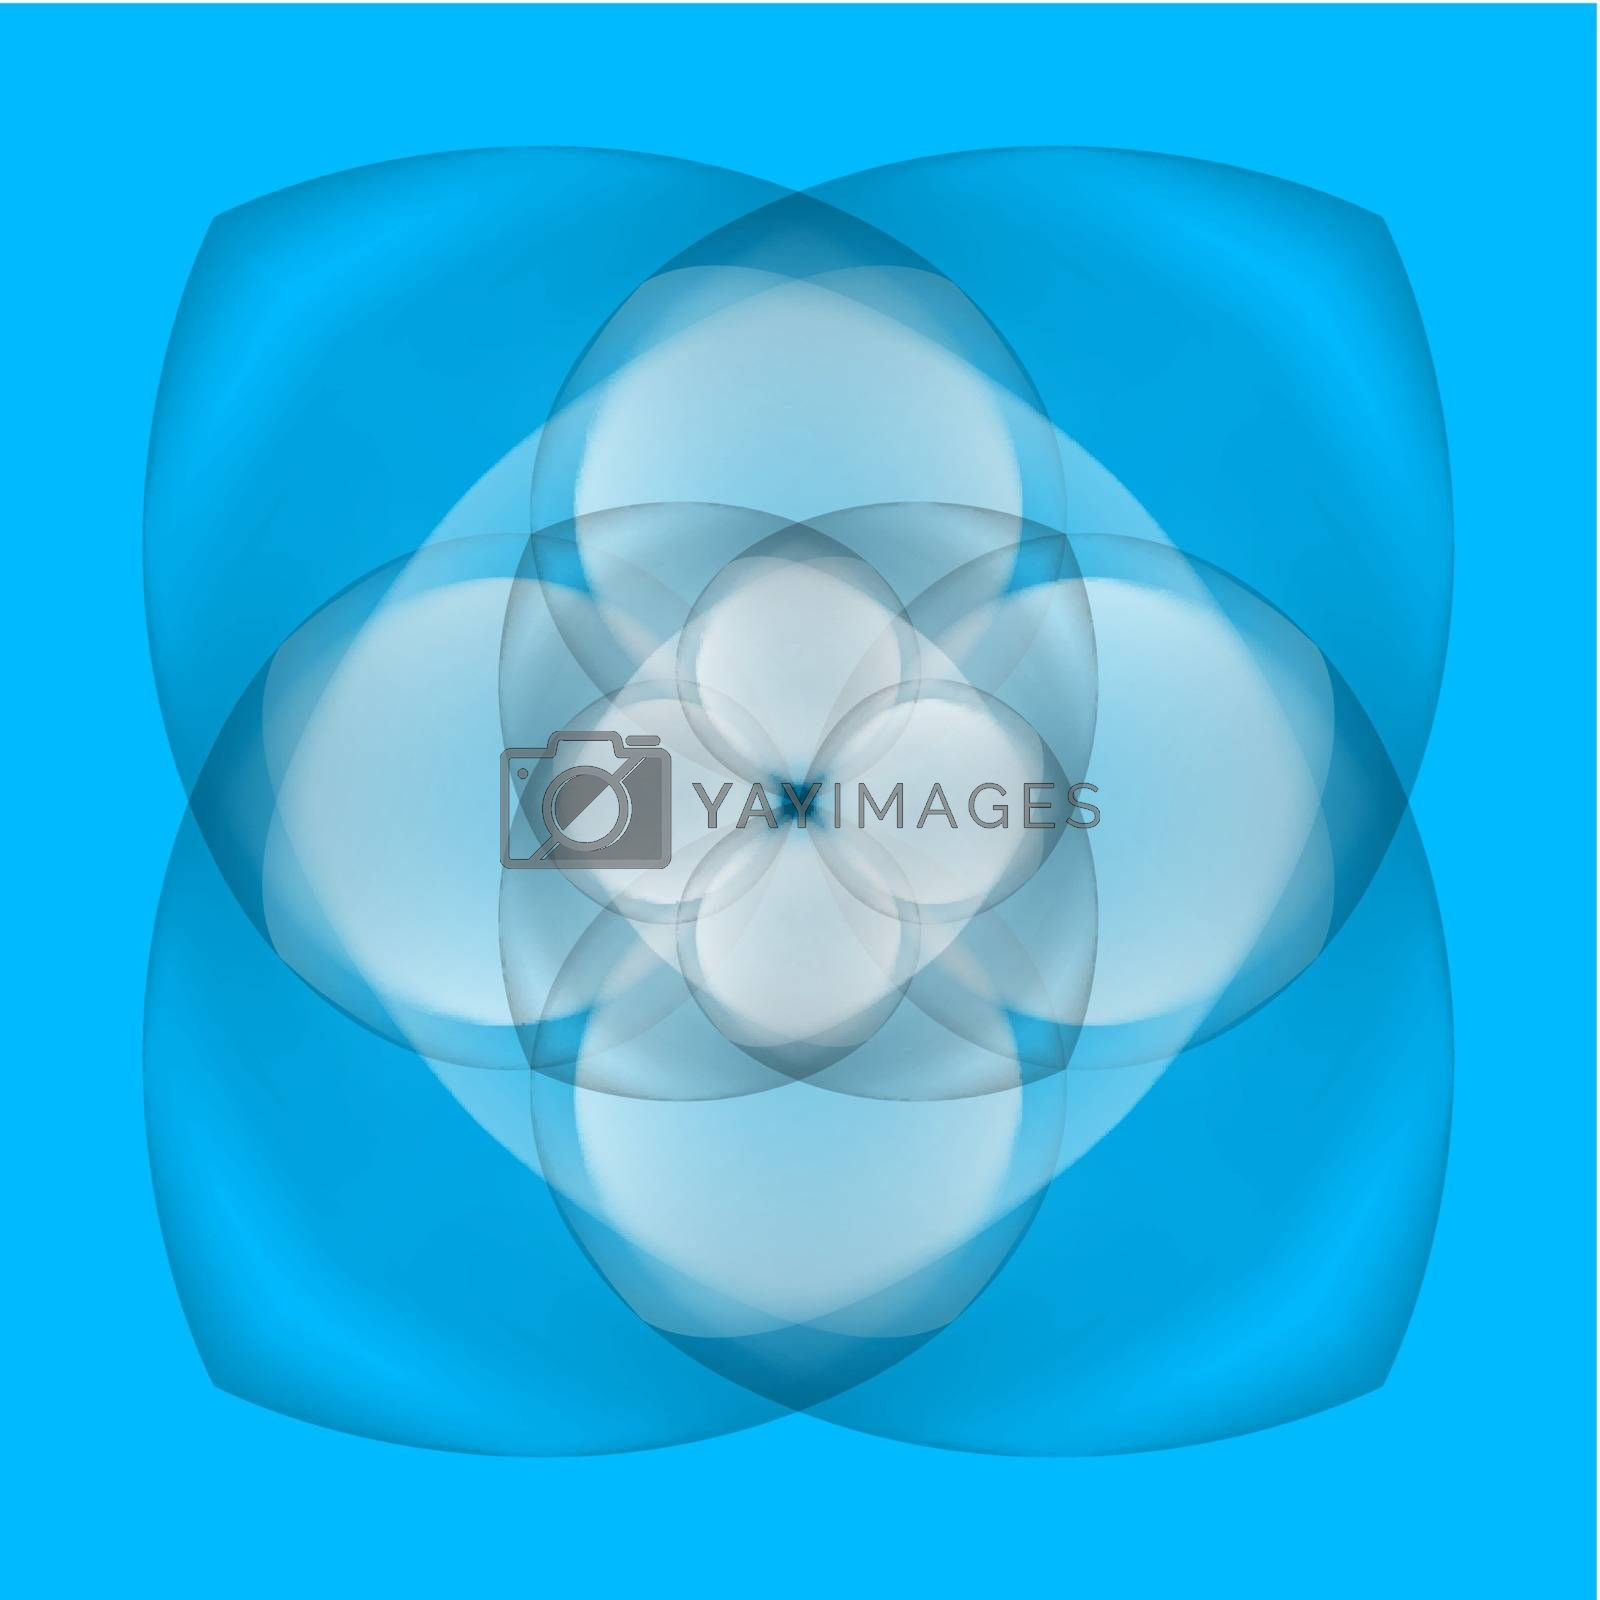 Royalty free image of Abstract flower on blue background by dvarg